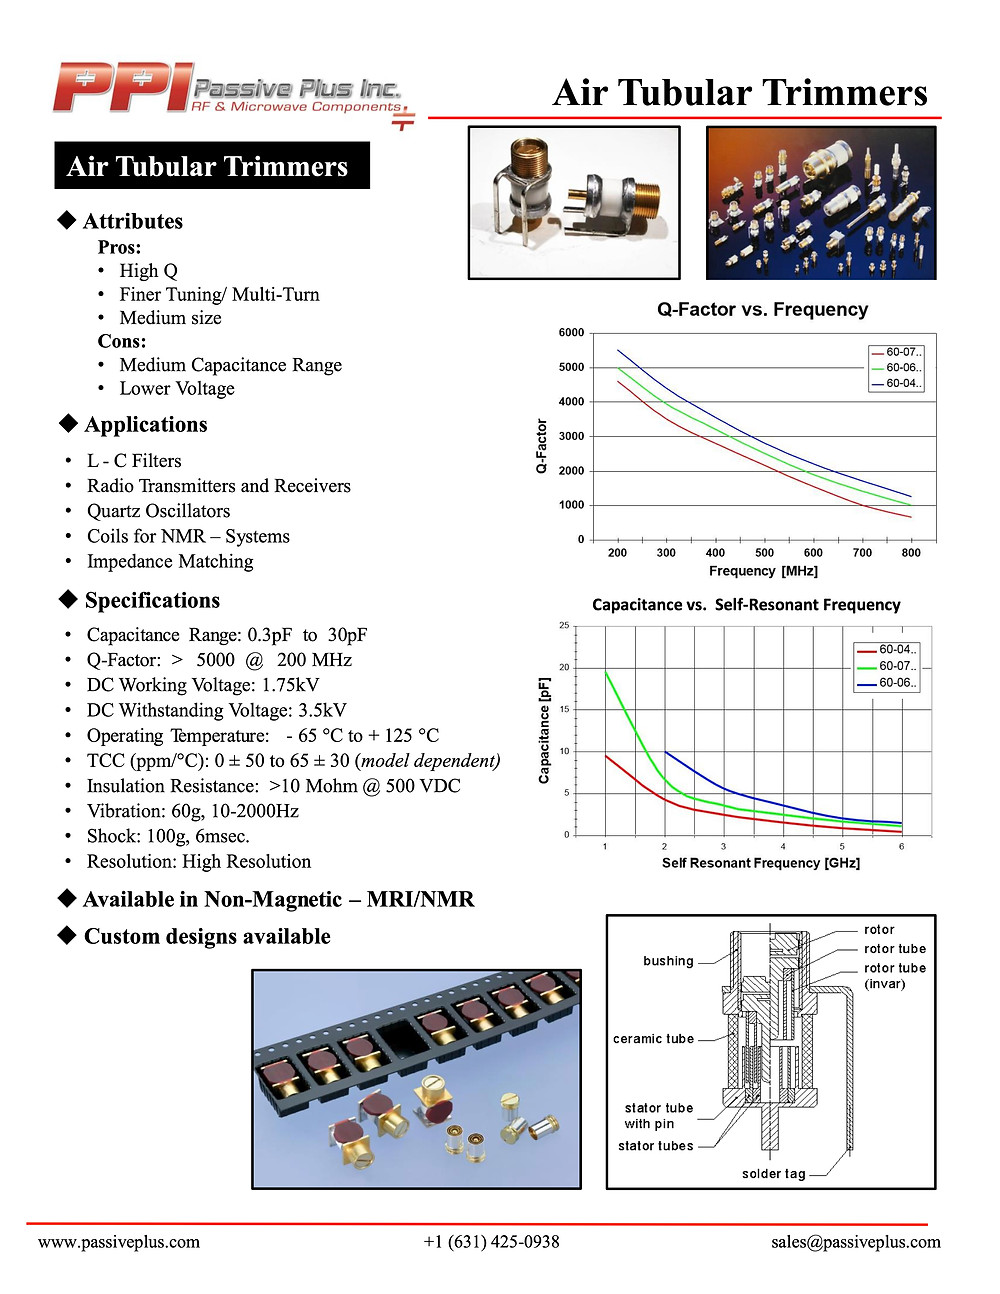 Passive Plus Air Tubular Trimmer Capacitor Data Sheet